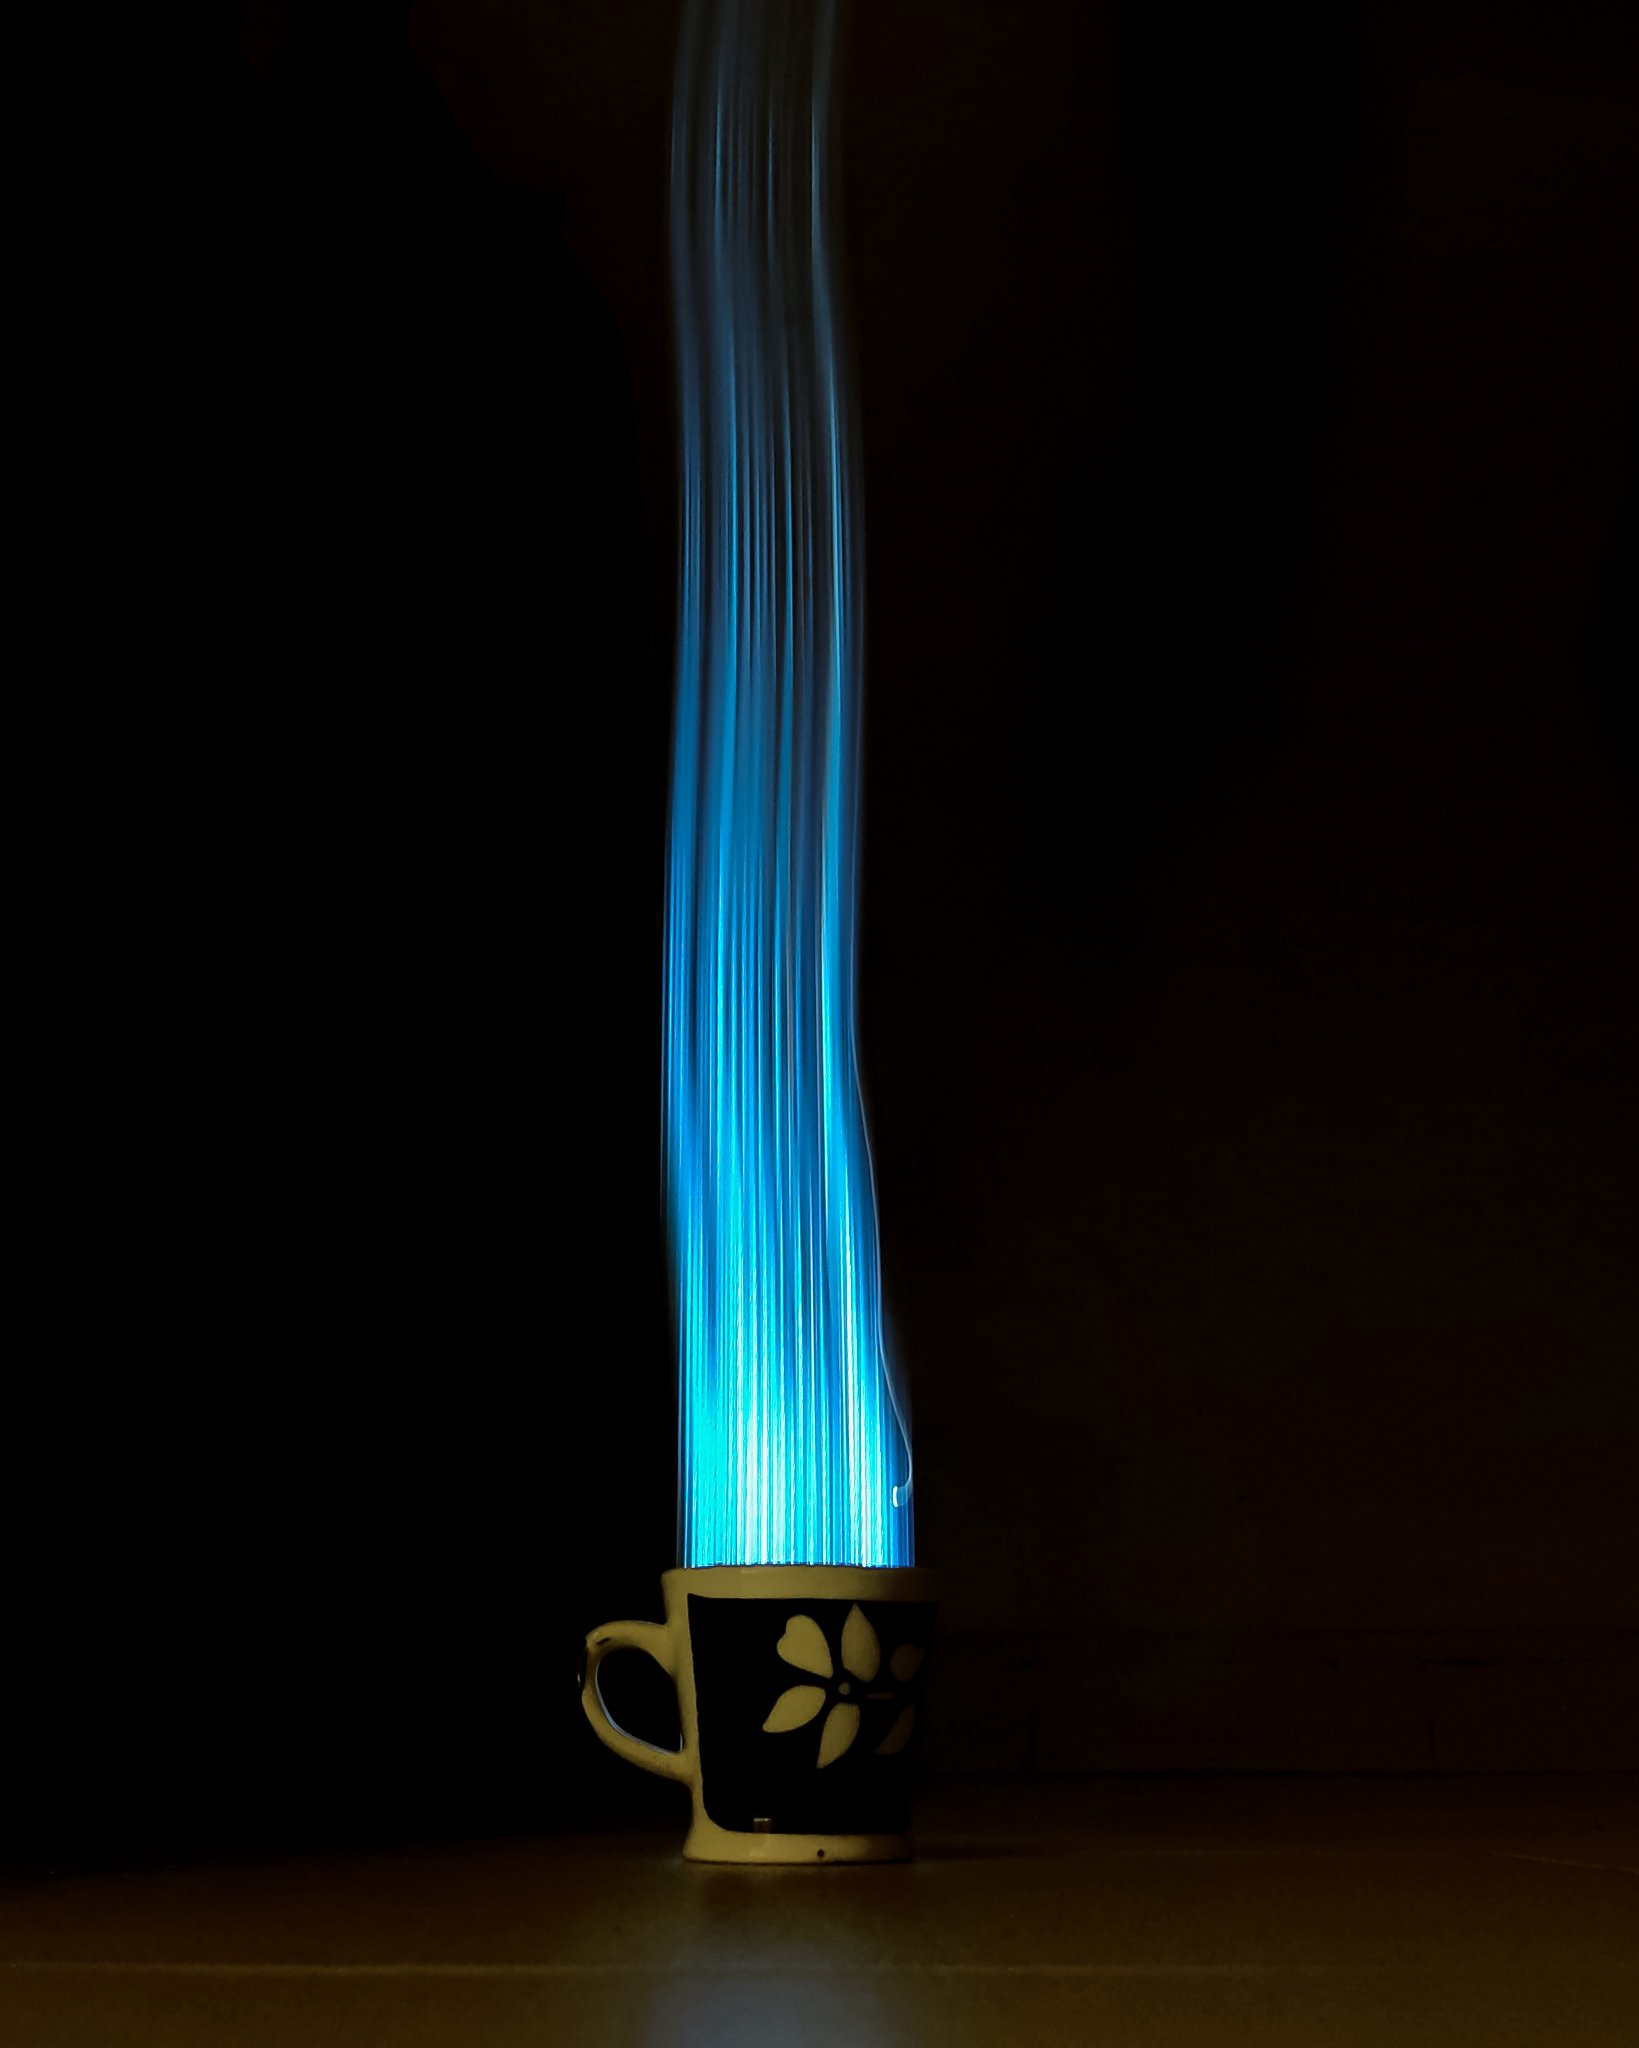 Blue lights beaming from a cup